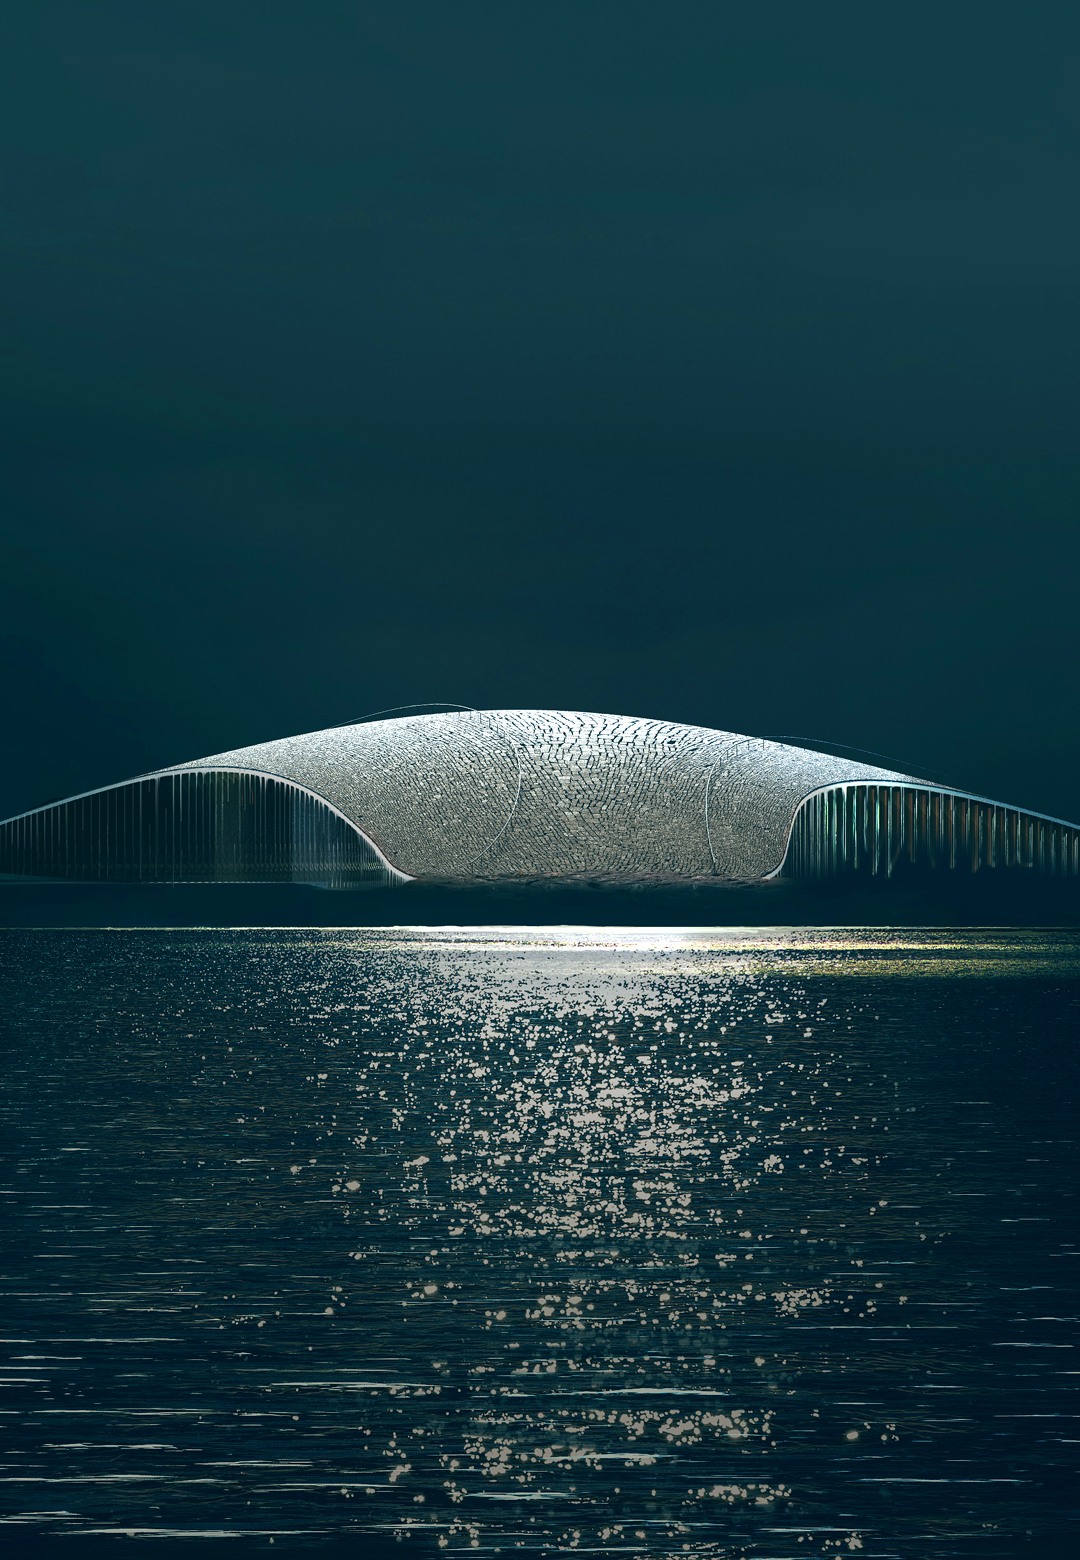 The Whale by Dorte Mandrup is the newest Arctic attraction to be completed by 2020 | The Whale by Denmark based Dorte Mandrup | STIRworld